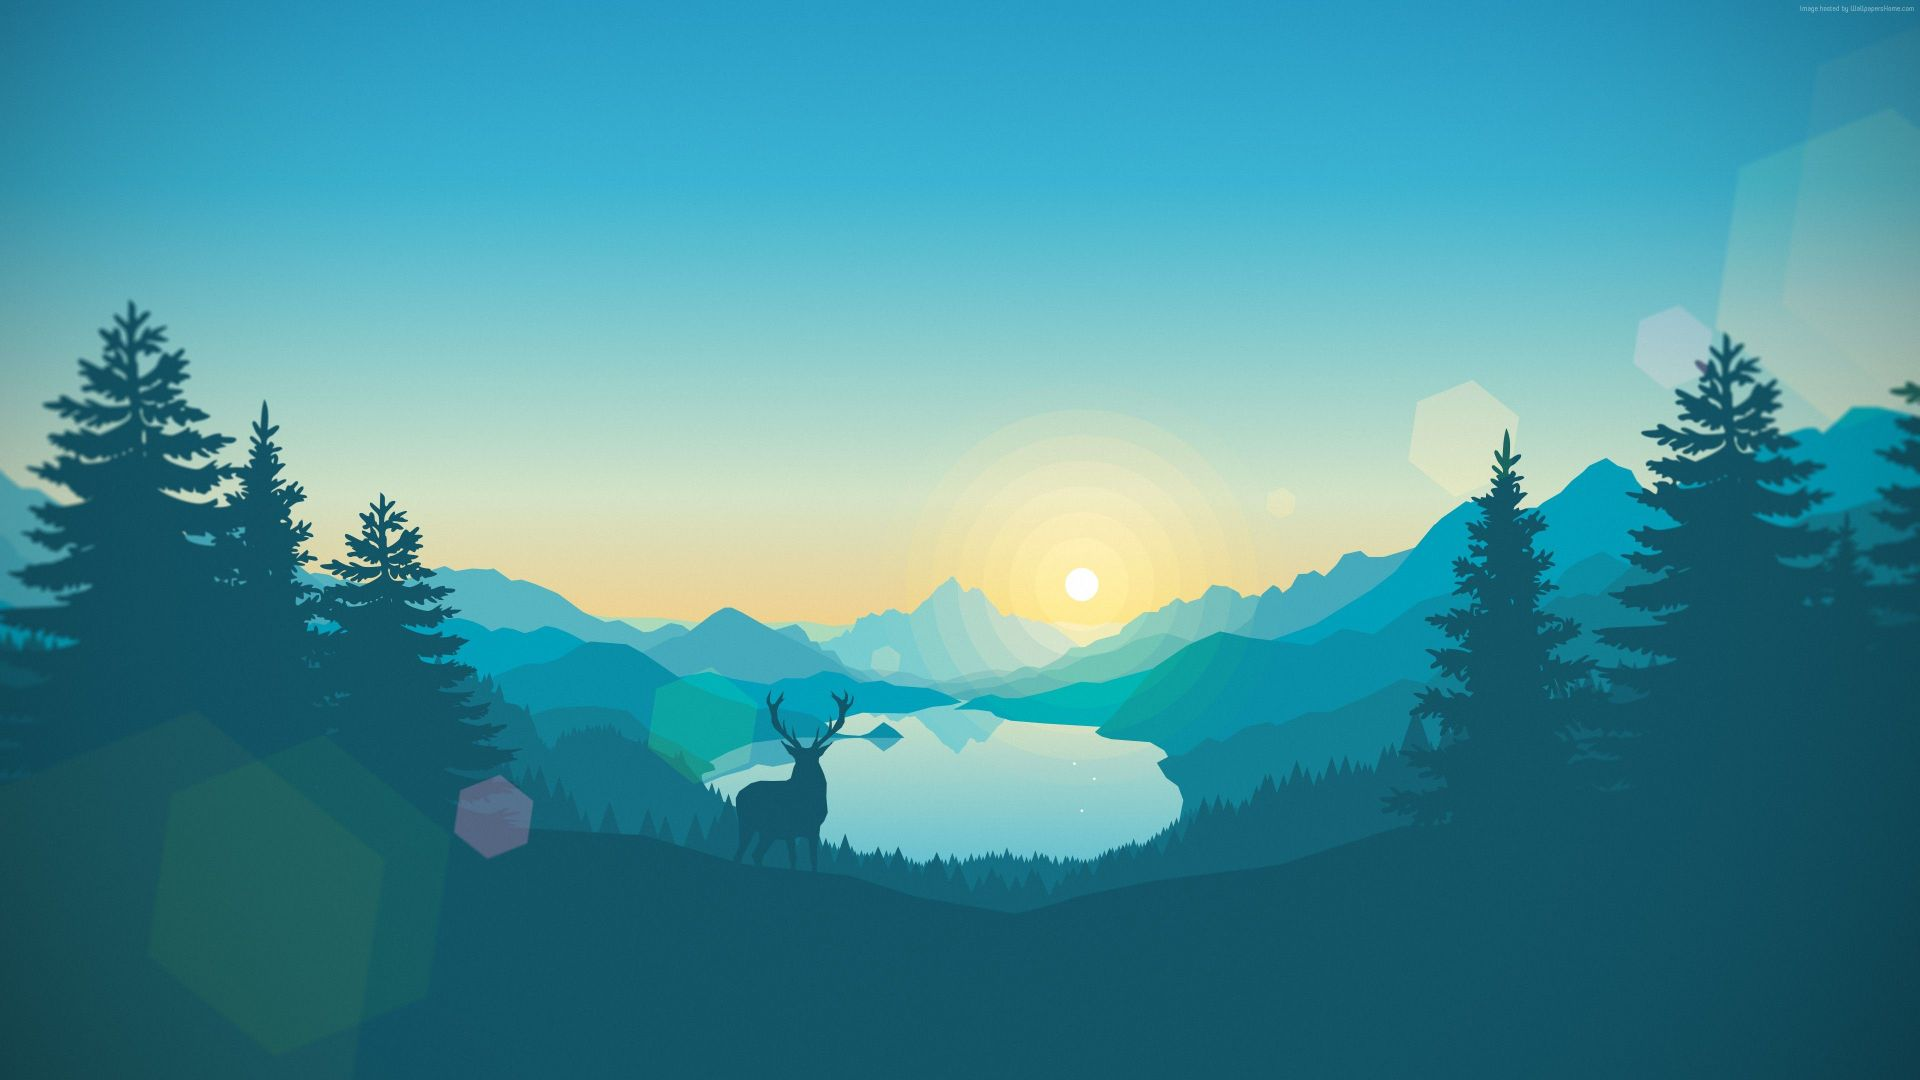 Wallpaper flat forest deer 4k 5k iphone wallpaper for Wallpaper home 4k